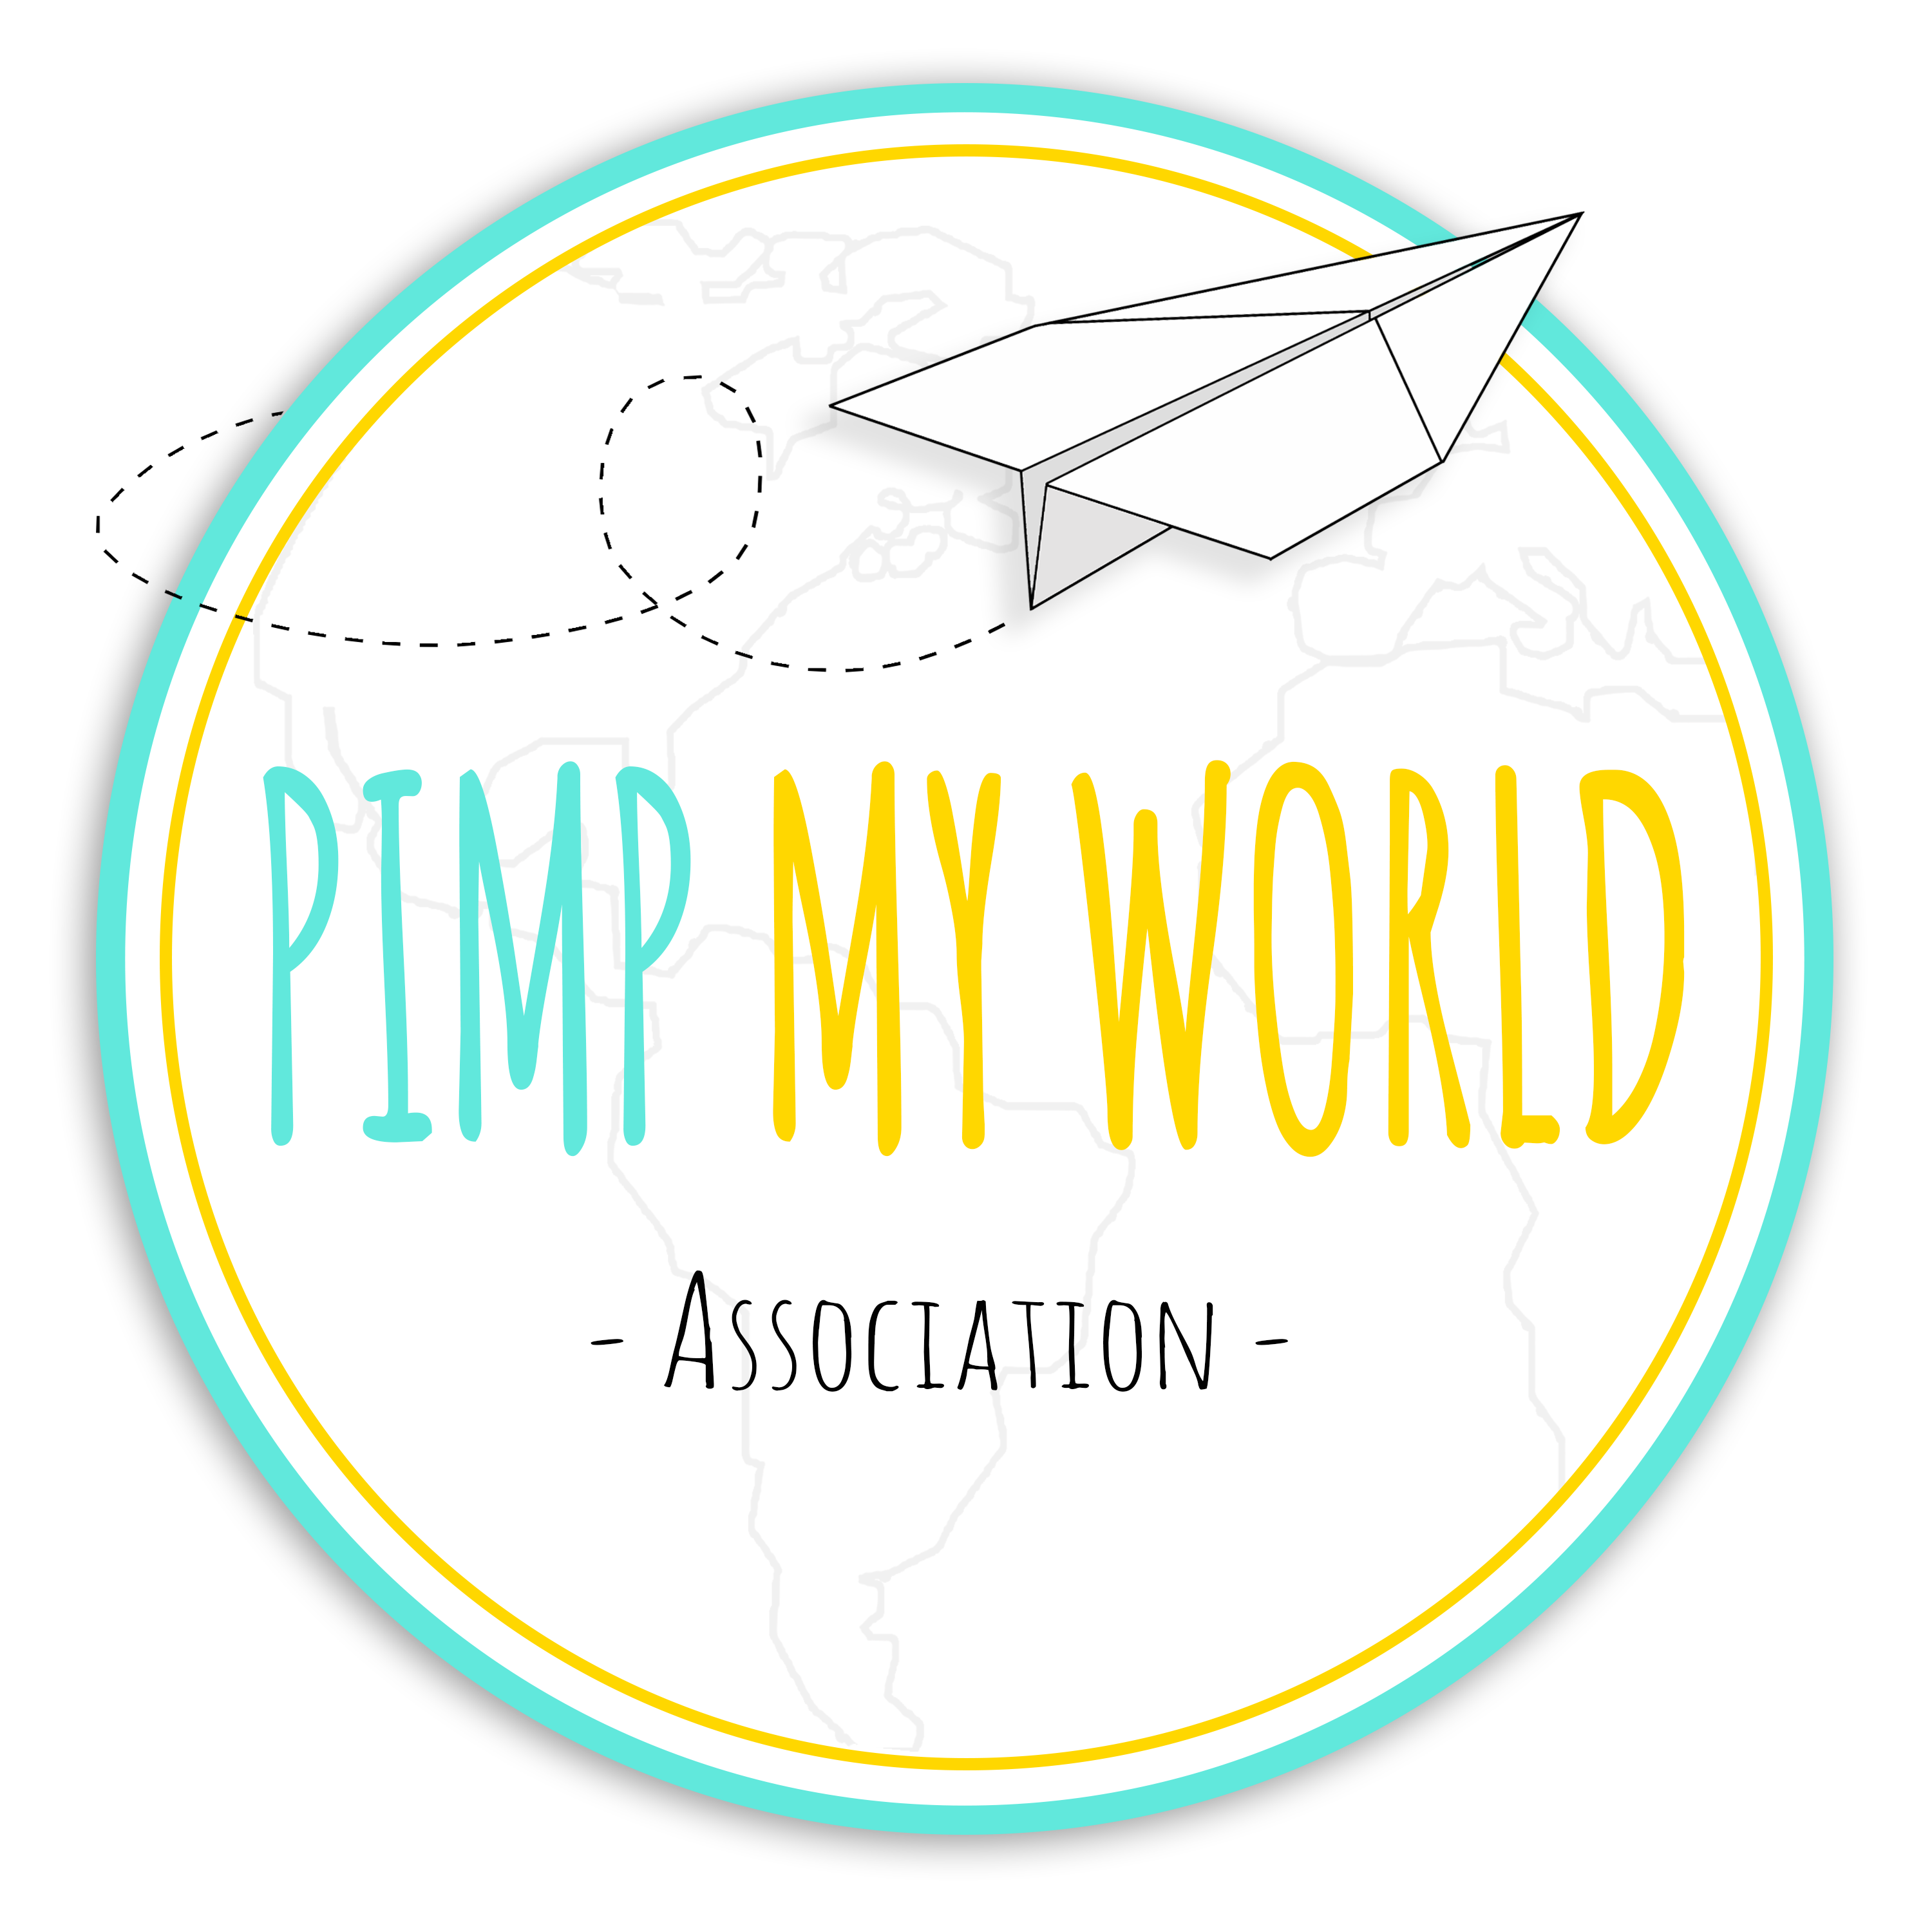 Association - Pimp My World - PMW